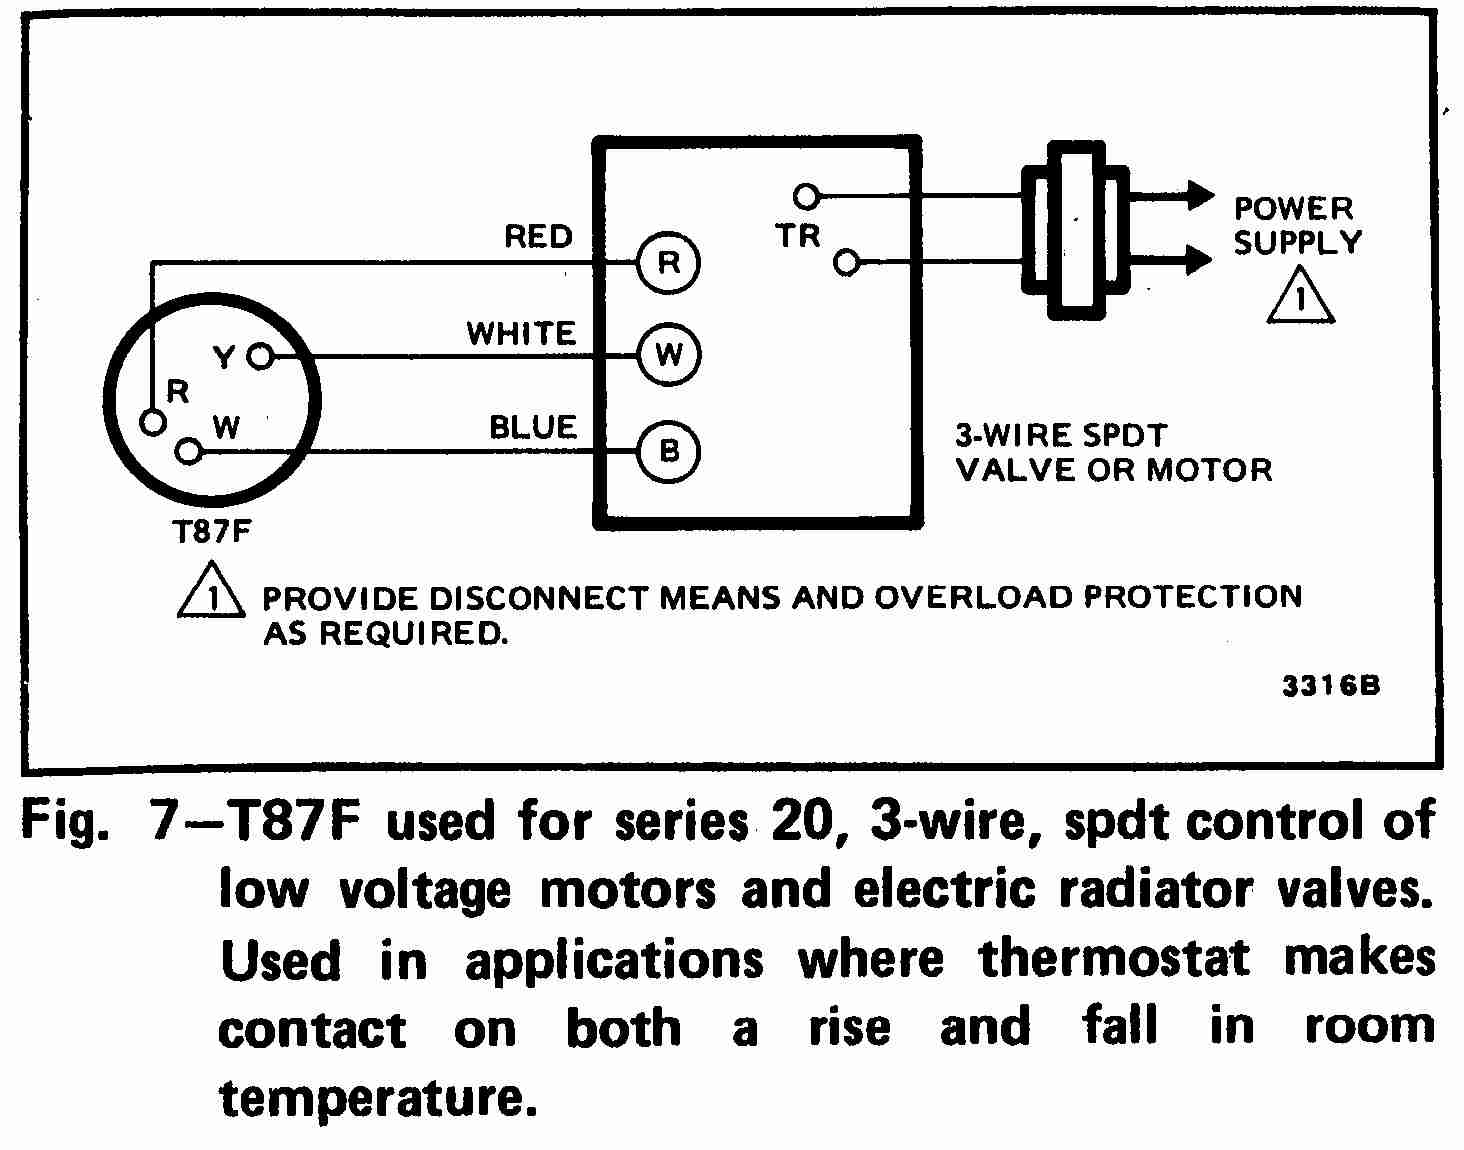 2 wire honeywell thermostat wiring diagram honeywell thermostat wiring diagram for goodman heat pump room thermostat wiring diagrams for hvac systems